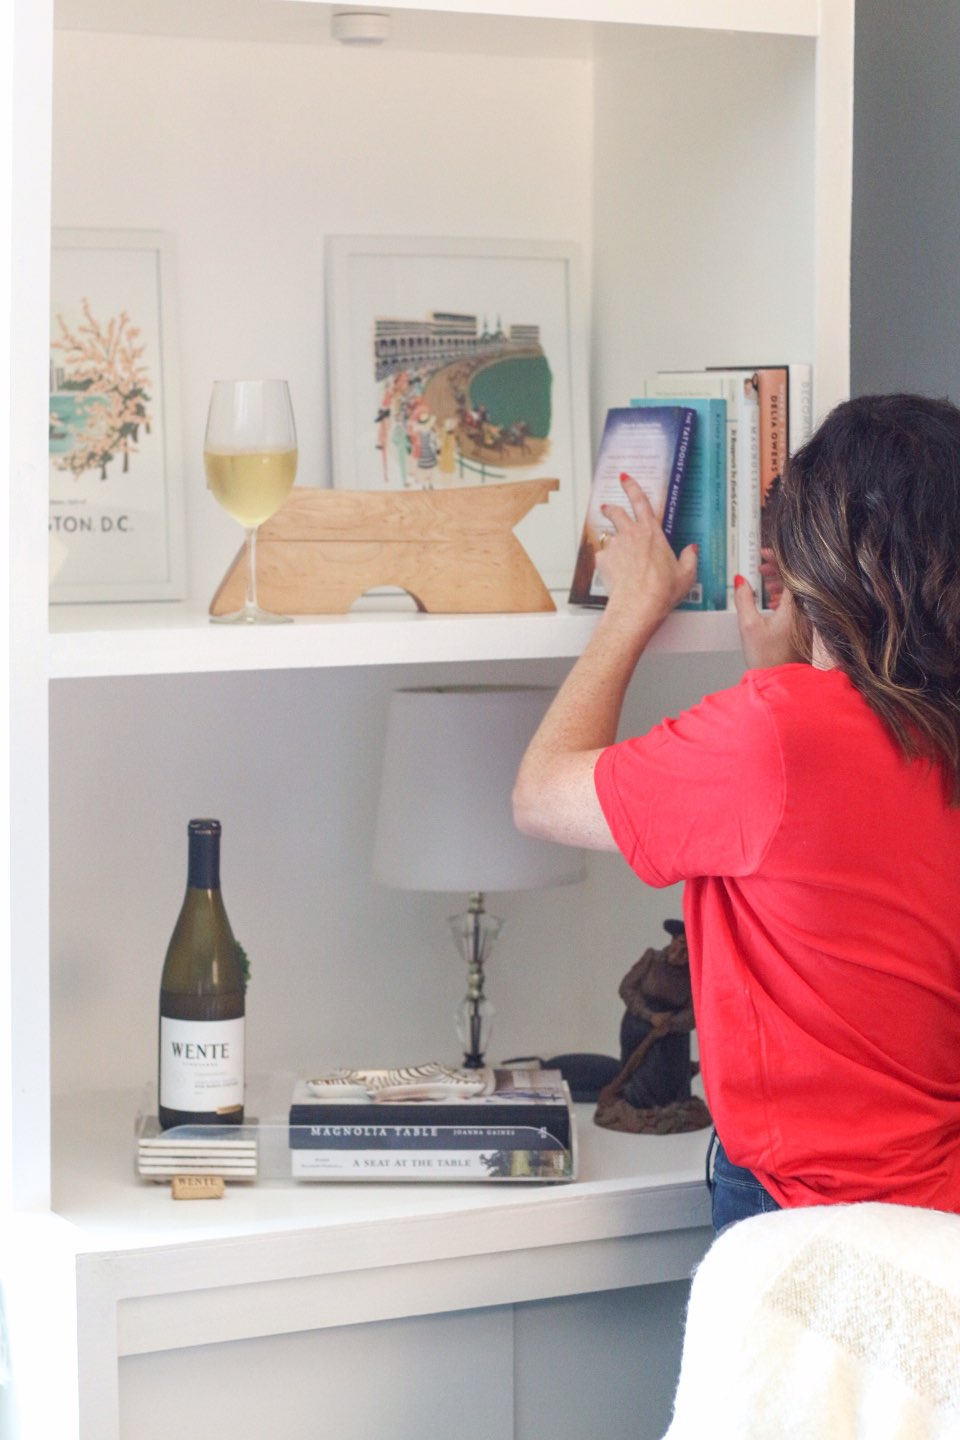 How I Make Time for Decorating with Wente Vineyards - I'm Fixin' To - @mbg0112 | How I Make Time for Decorating with Wente Vineyards by popular North Carolina lifestyle blog, I'm Fixin' To: image of a woman putting a book on a book shelf with a glass and bottle of Wente Vineyards wine next to her.